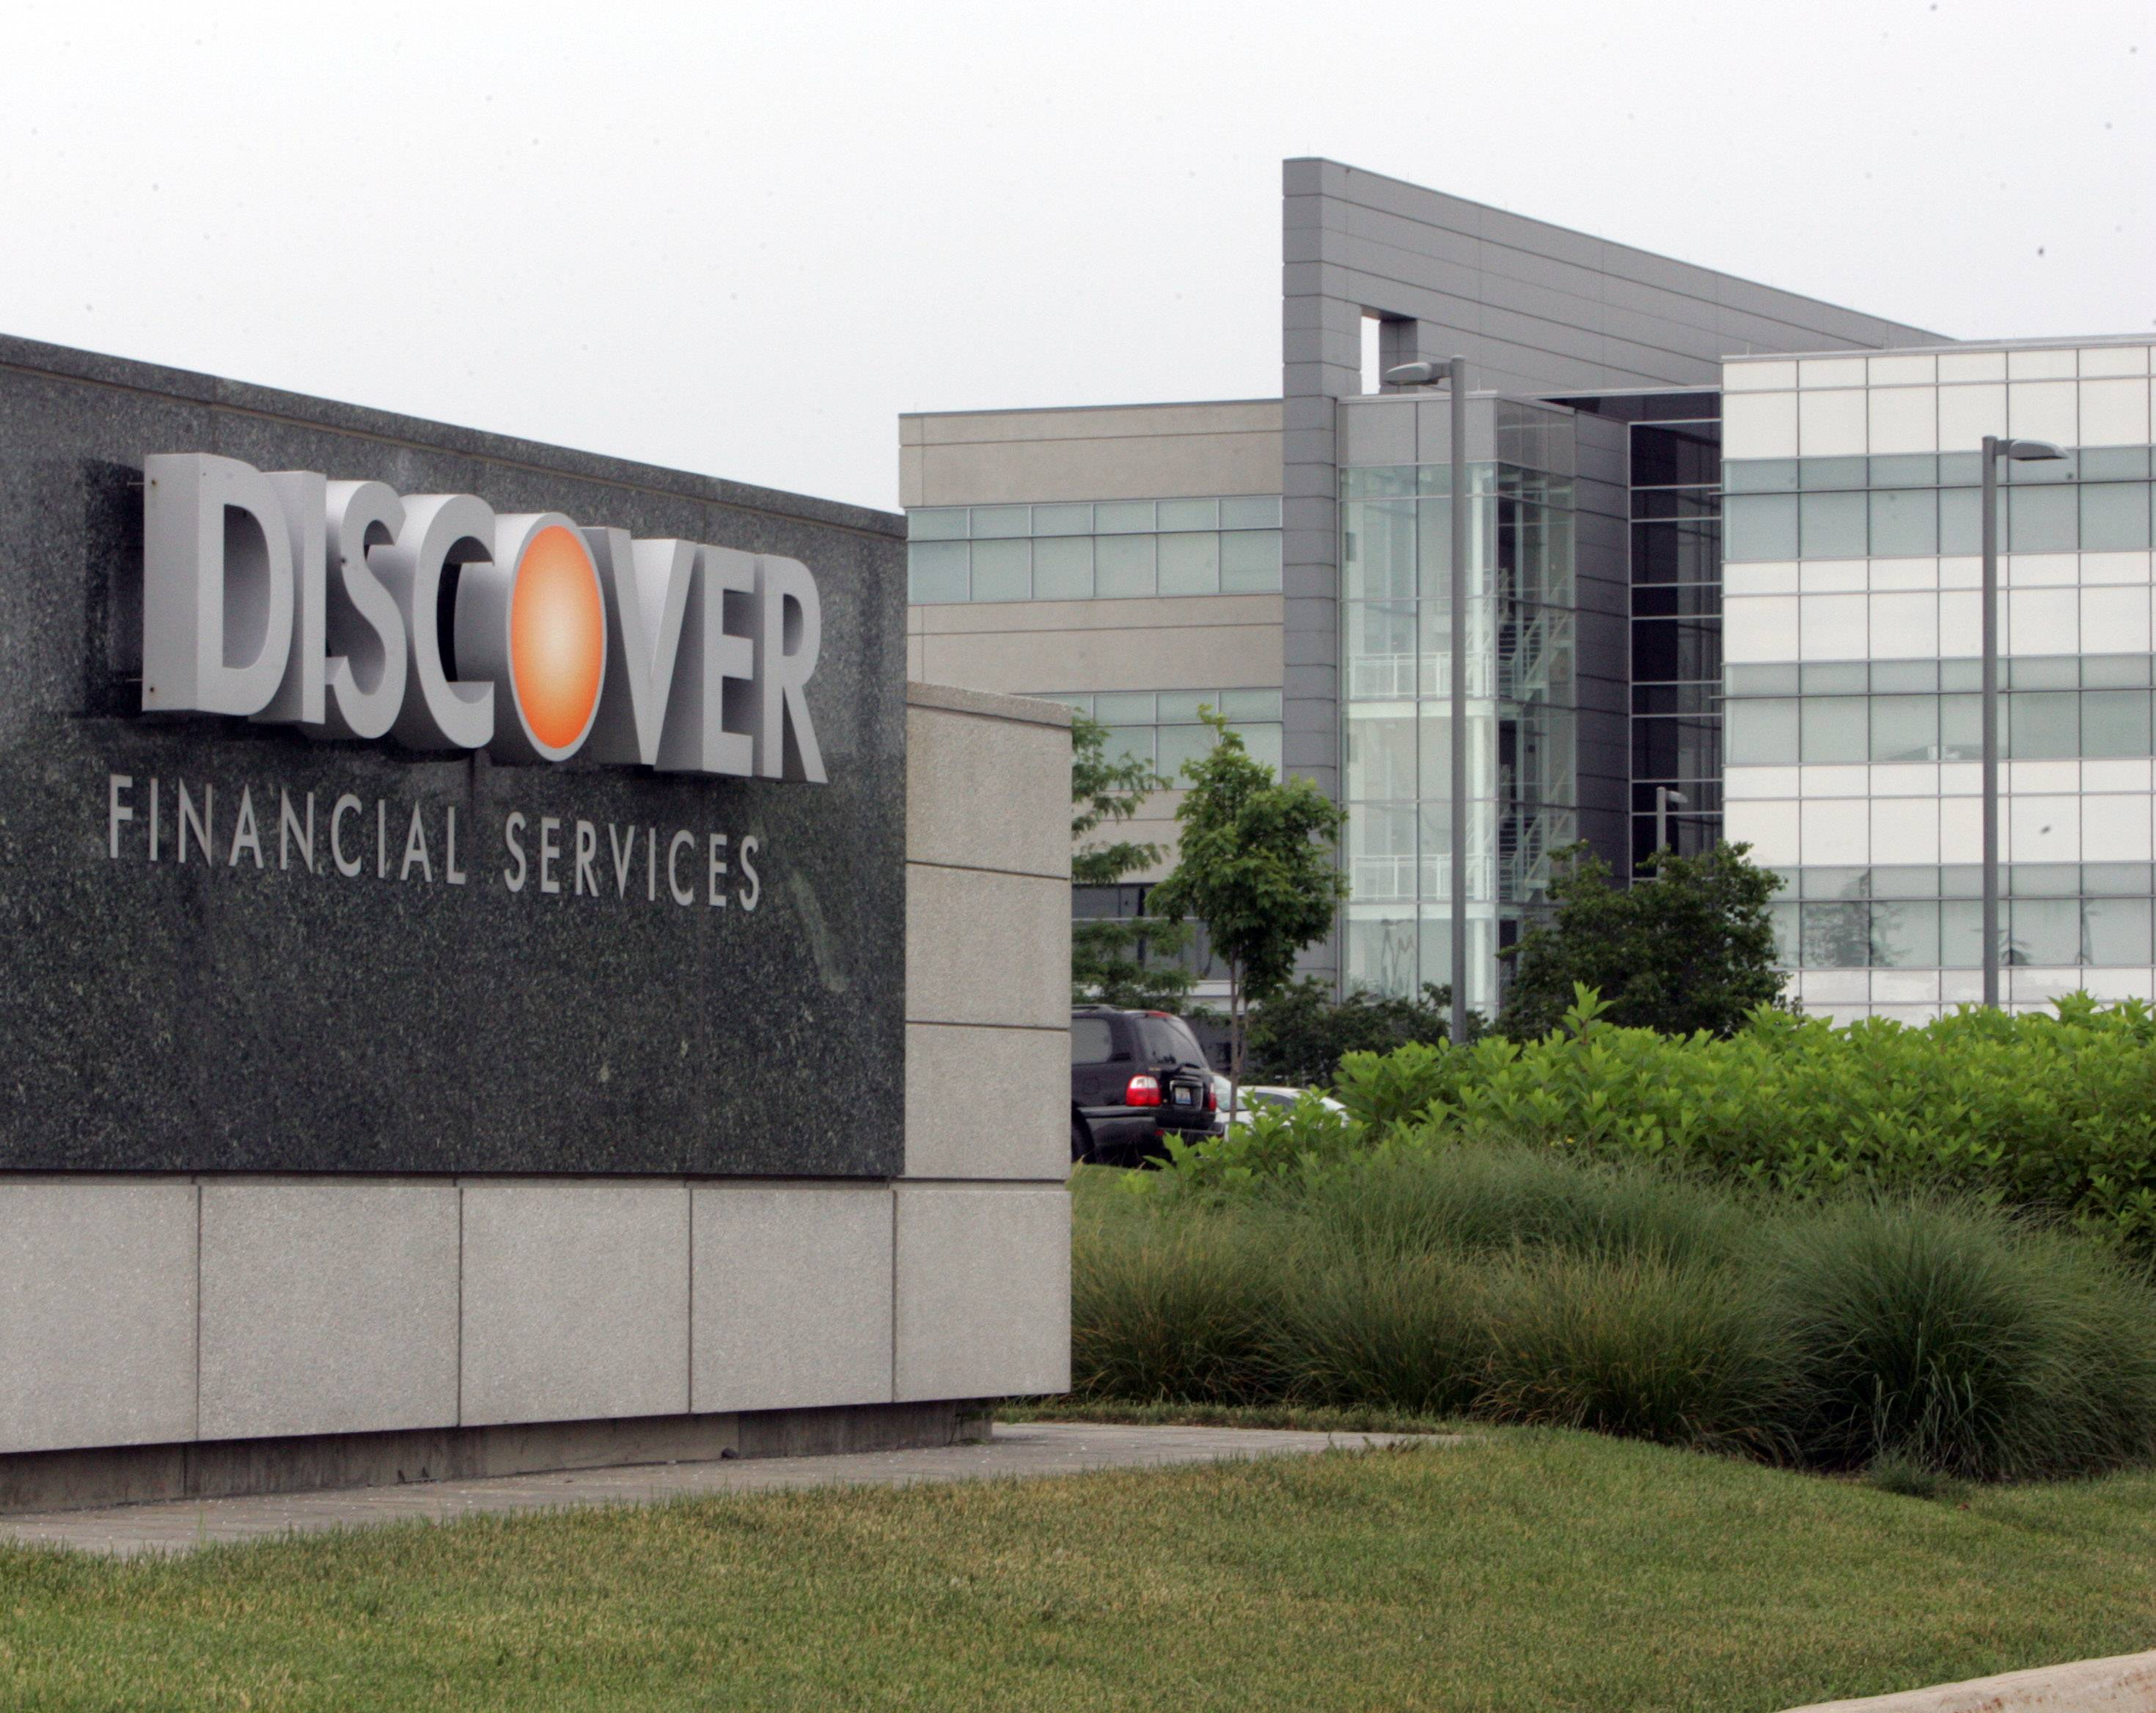 Discover Financial Services, headquarters in Riverwoods, signed an agreement to expand its services in Mexico.